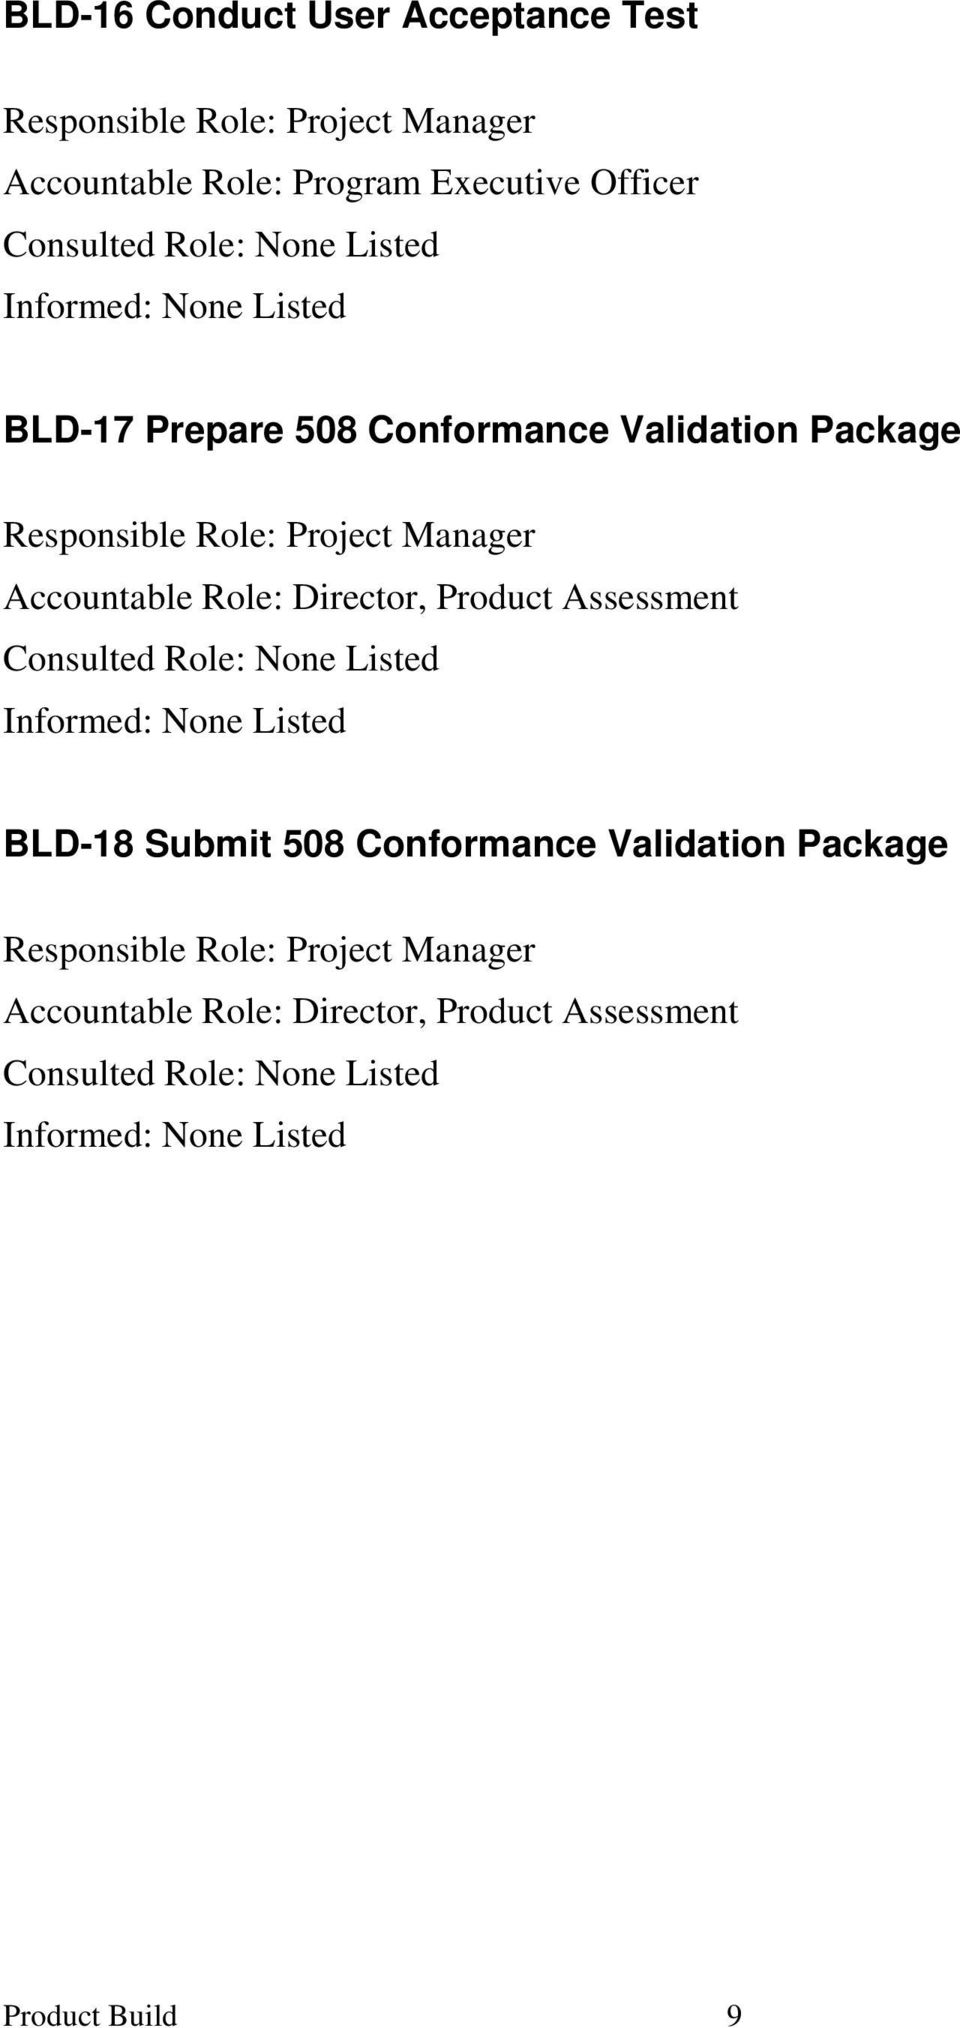 Accountable Role: Director, Product Assessment Consulted Role: Informed: BLD-18 Submit 508 Conformance Validation